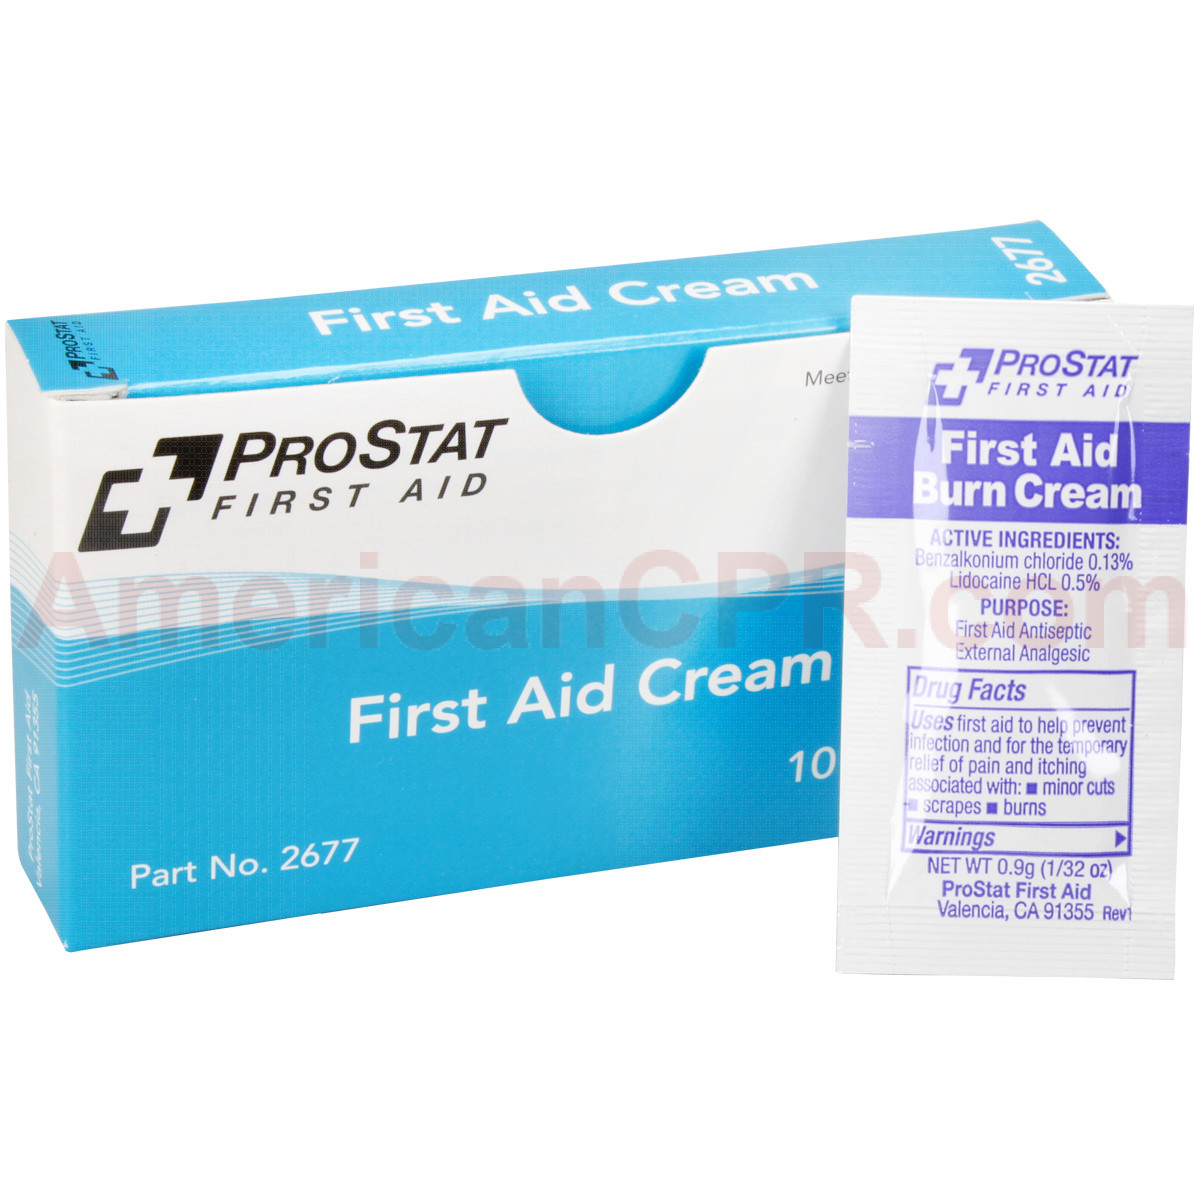 First Aid Burn Cream, 0.9gm, 10 packets per box, Prostat First Aid